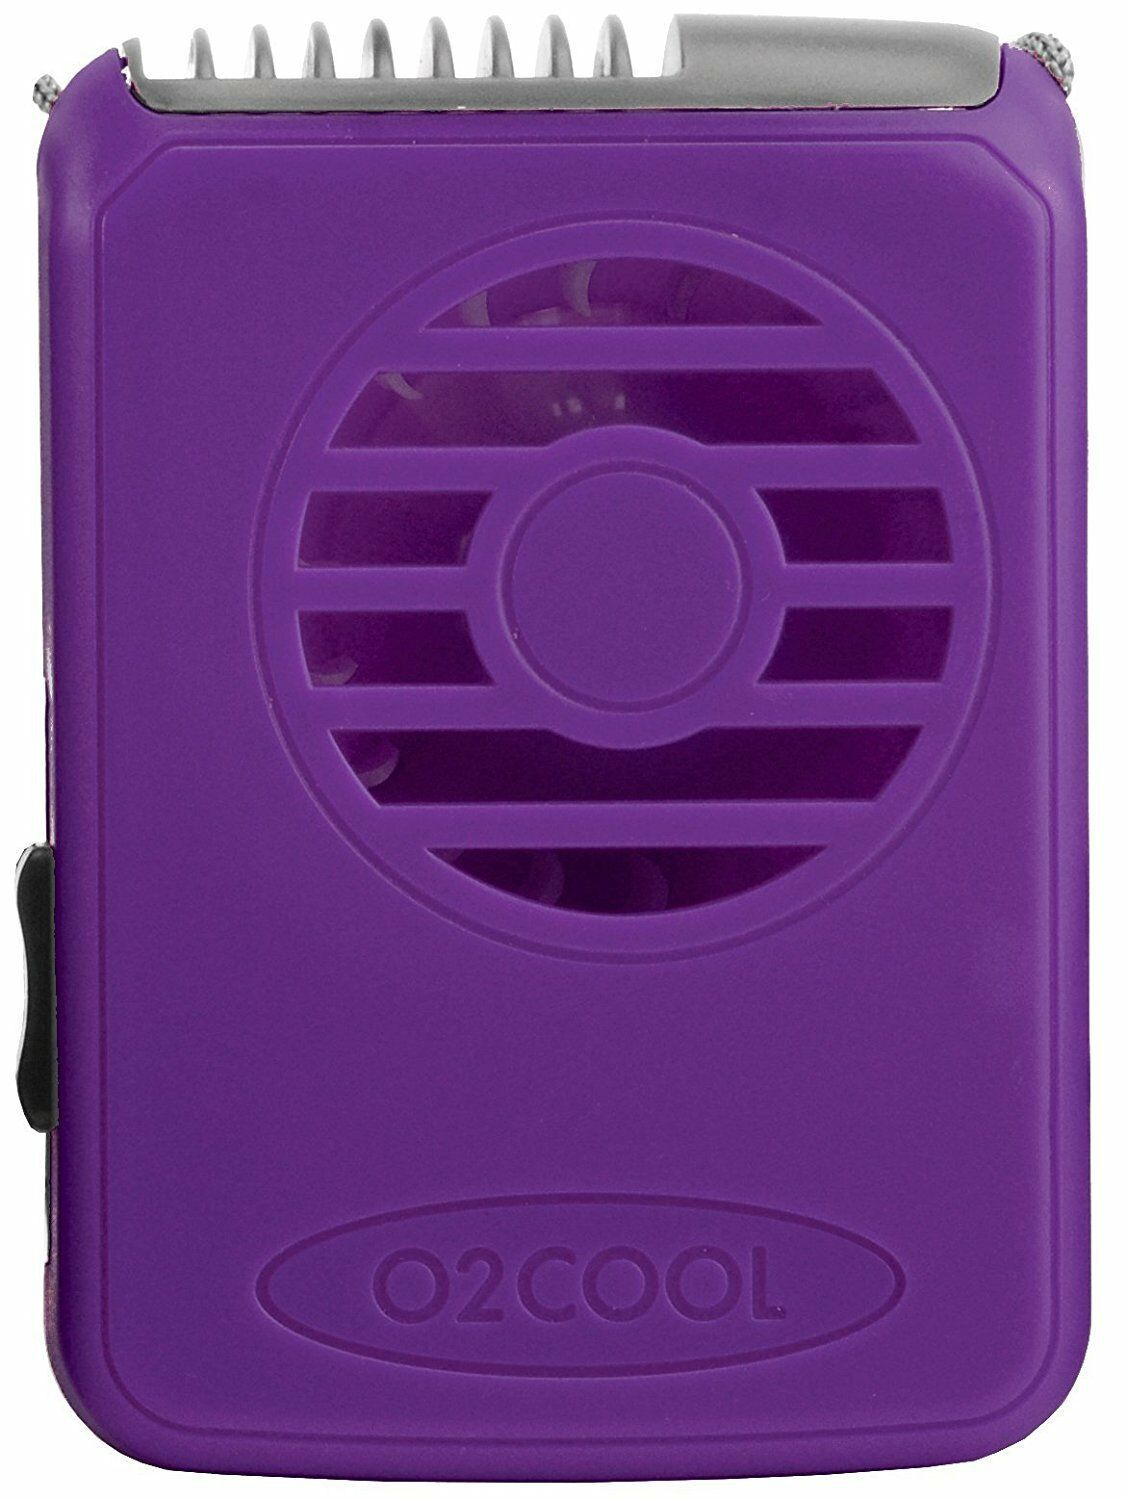 O2COOL Deluxe Necklace Fan with Breakaway Lanyard Battery Operated Purple  image 6